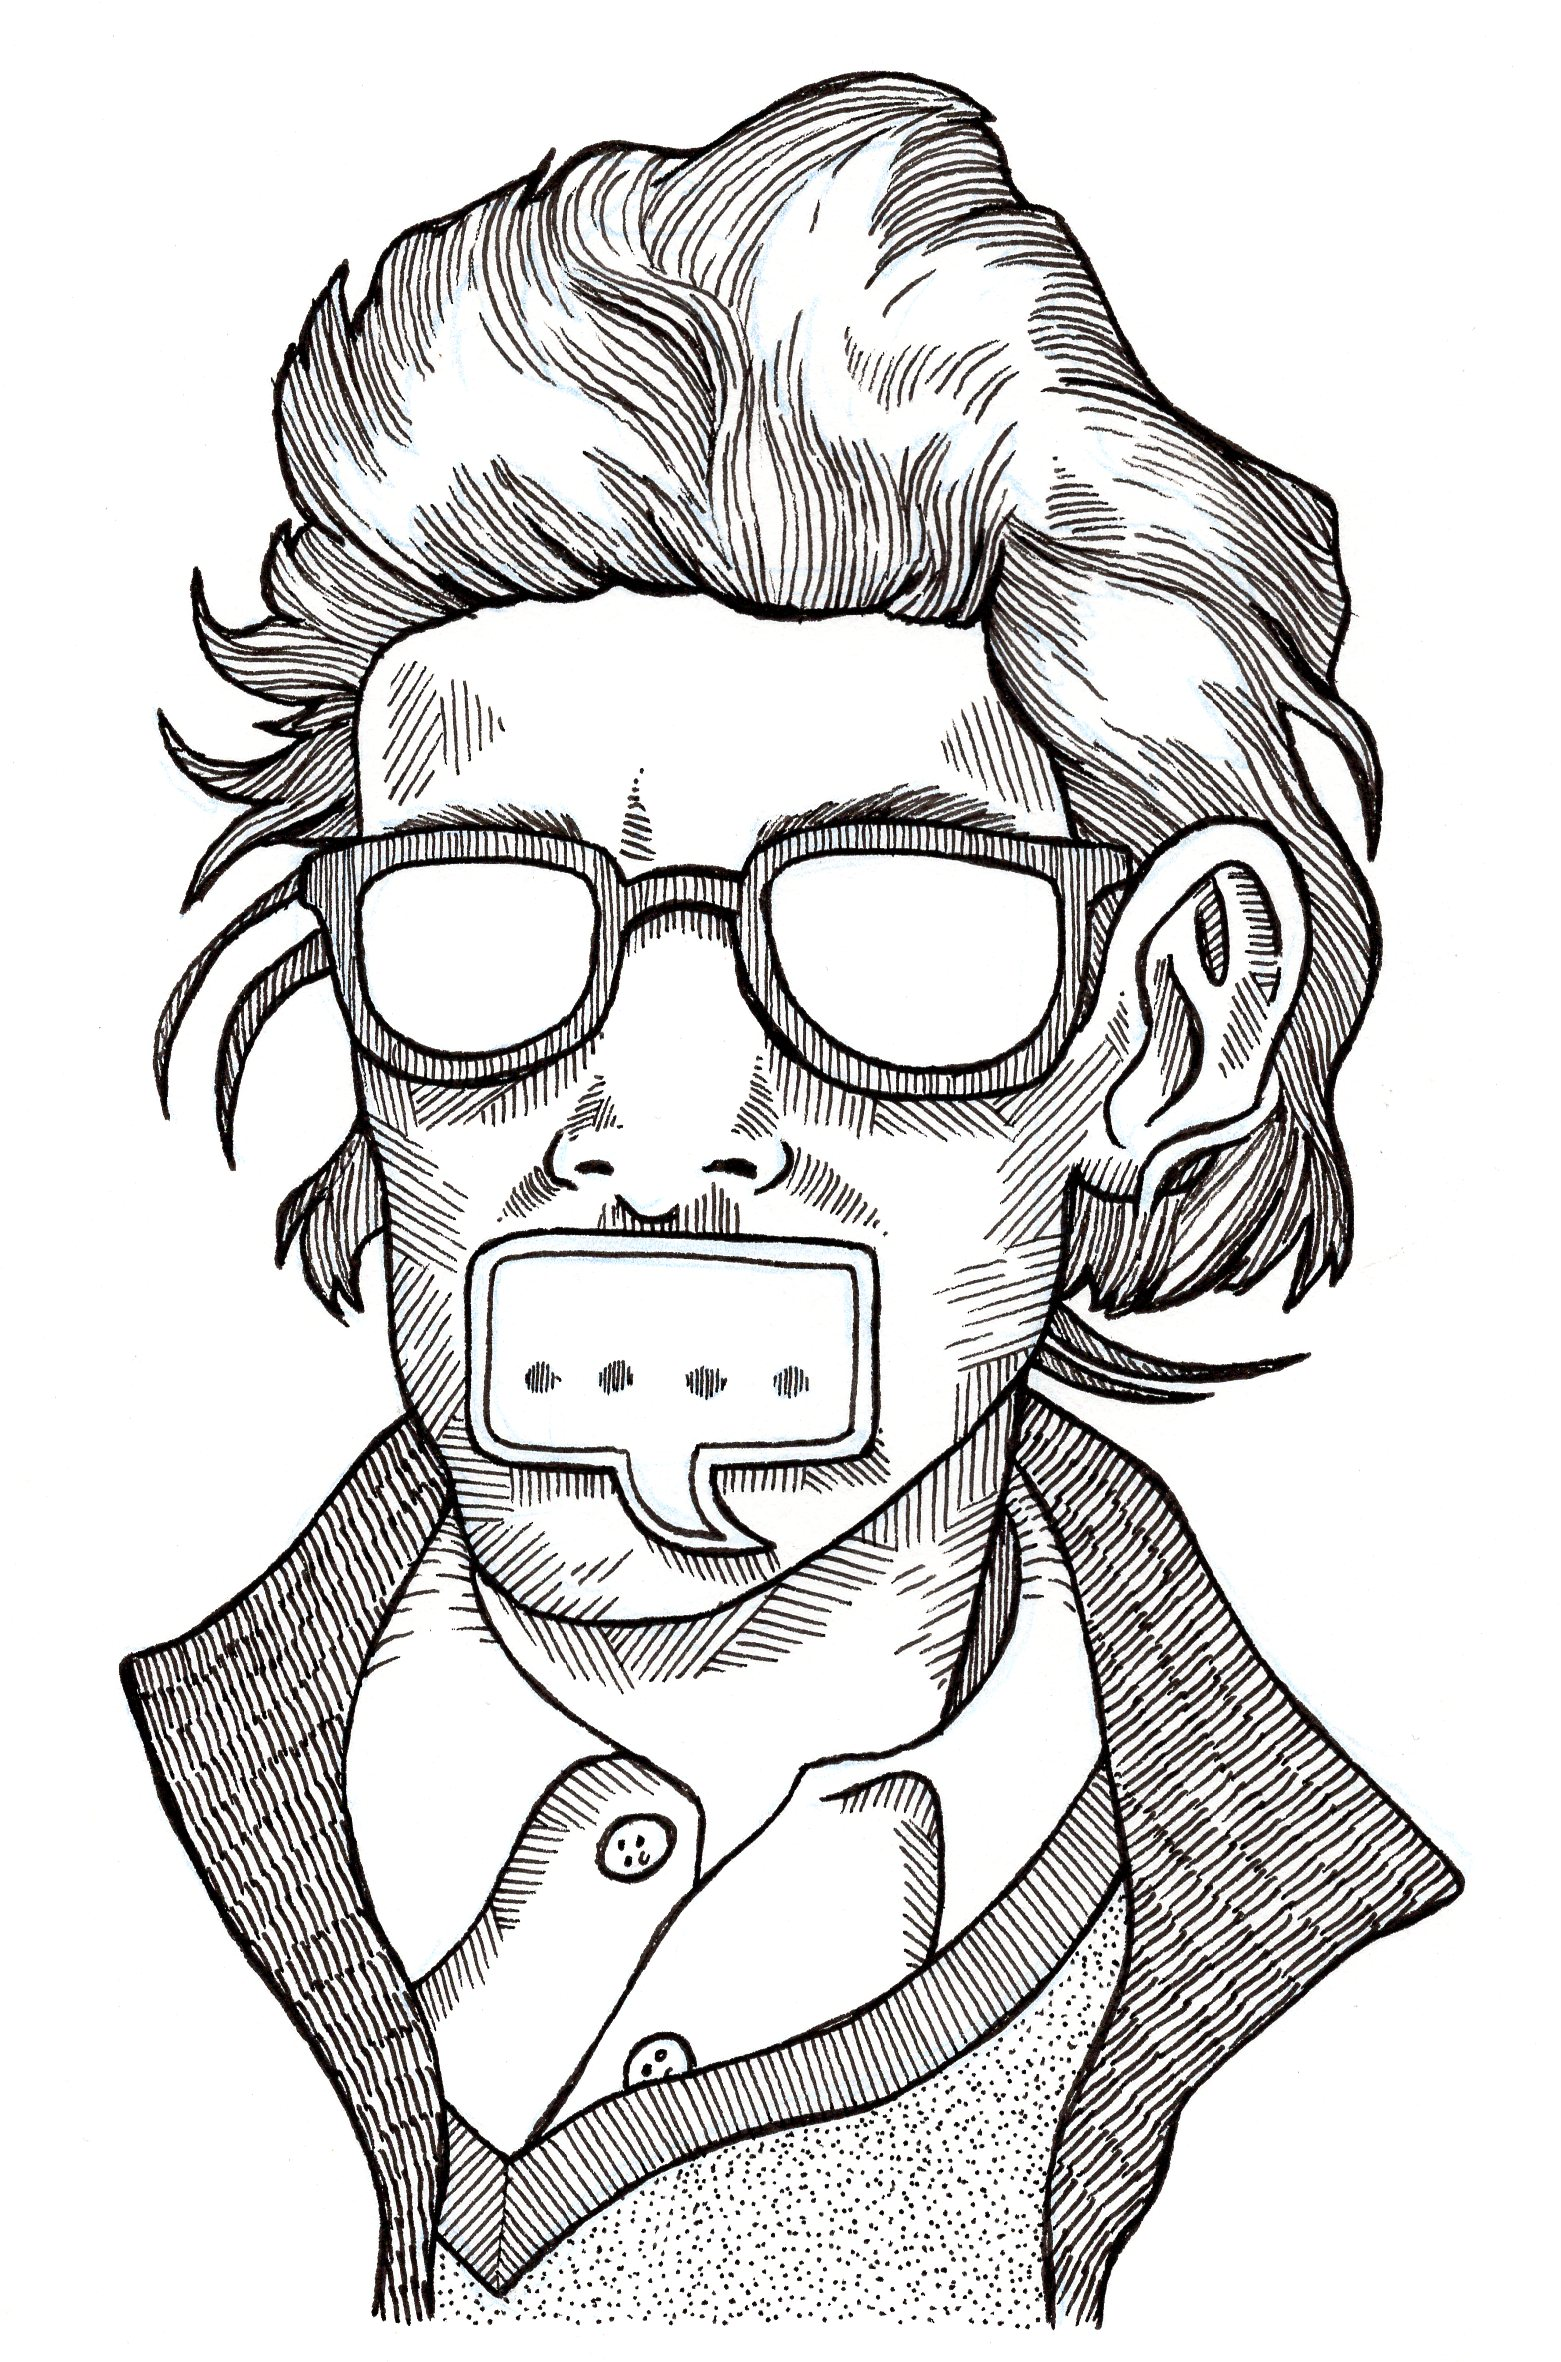 b & w image of man with glasses but no eyes, ellipses where lips should be